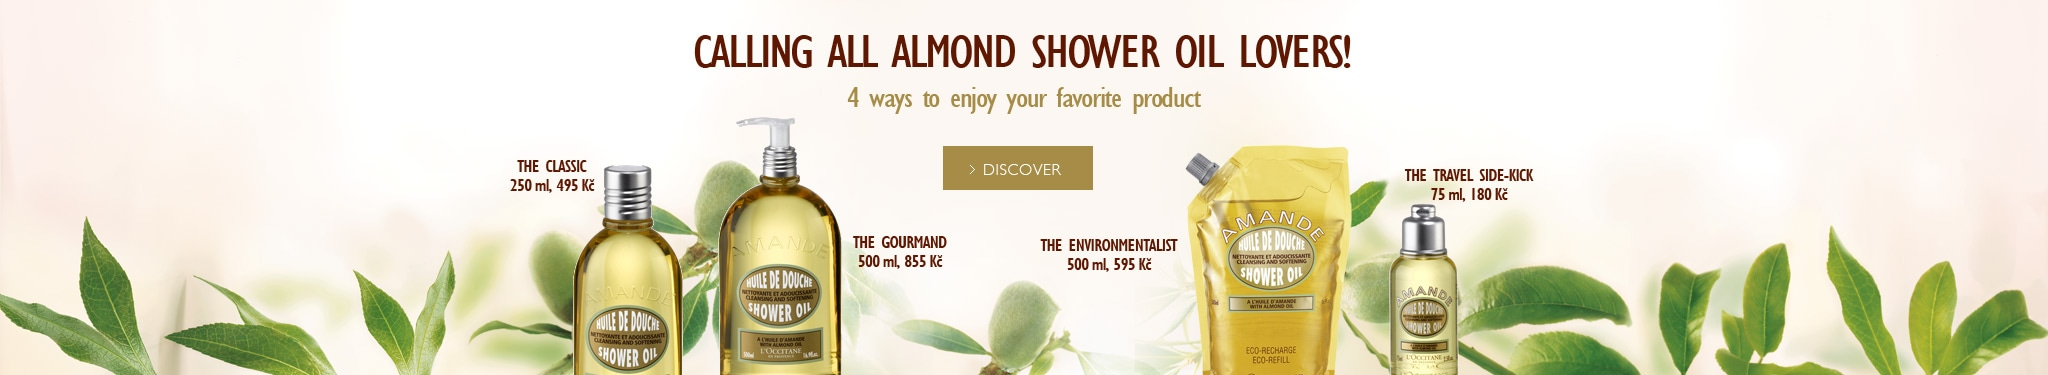 Calling all Almond Shower Oil Lovers!